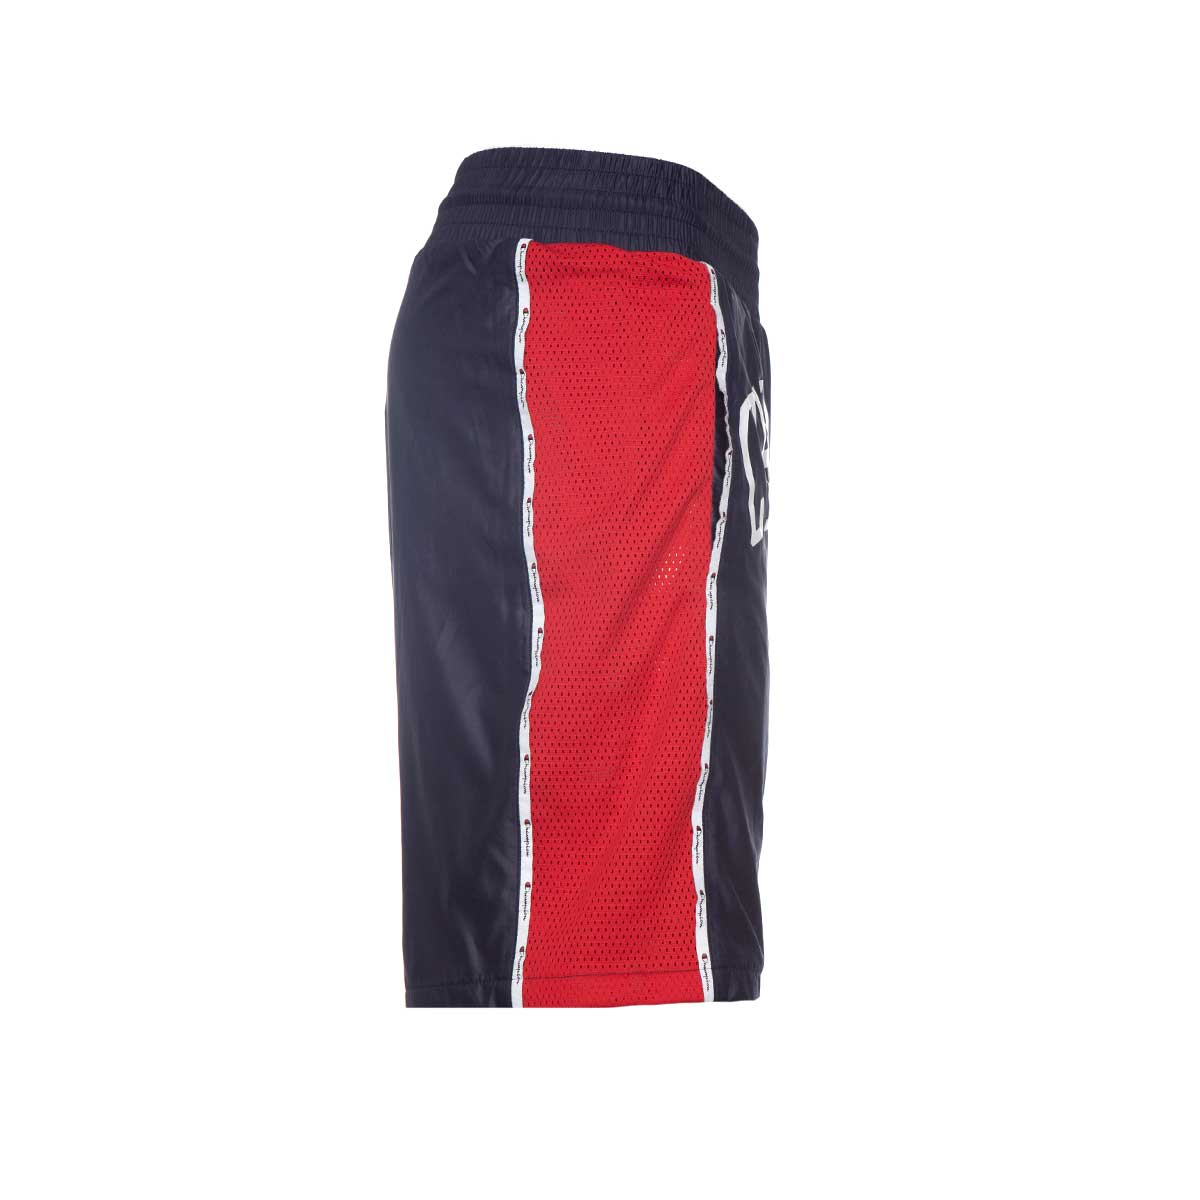 Champion Life® Men's Satin Shorts Indigo